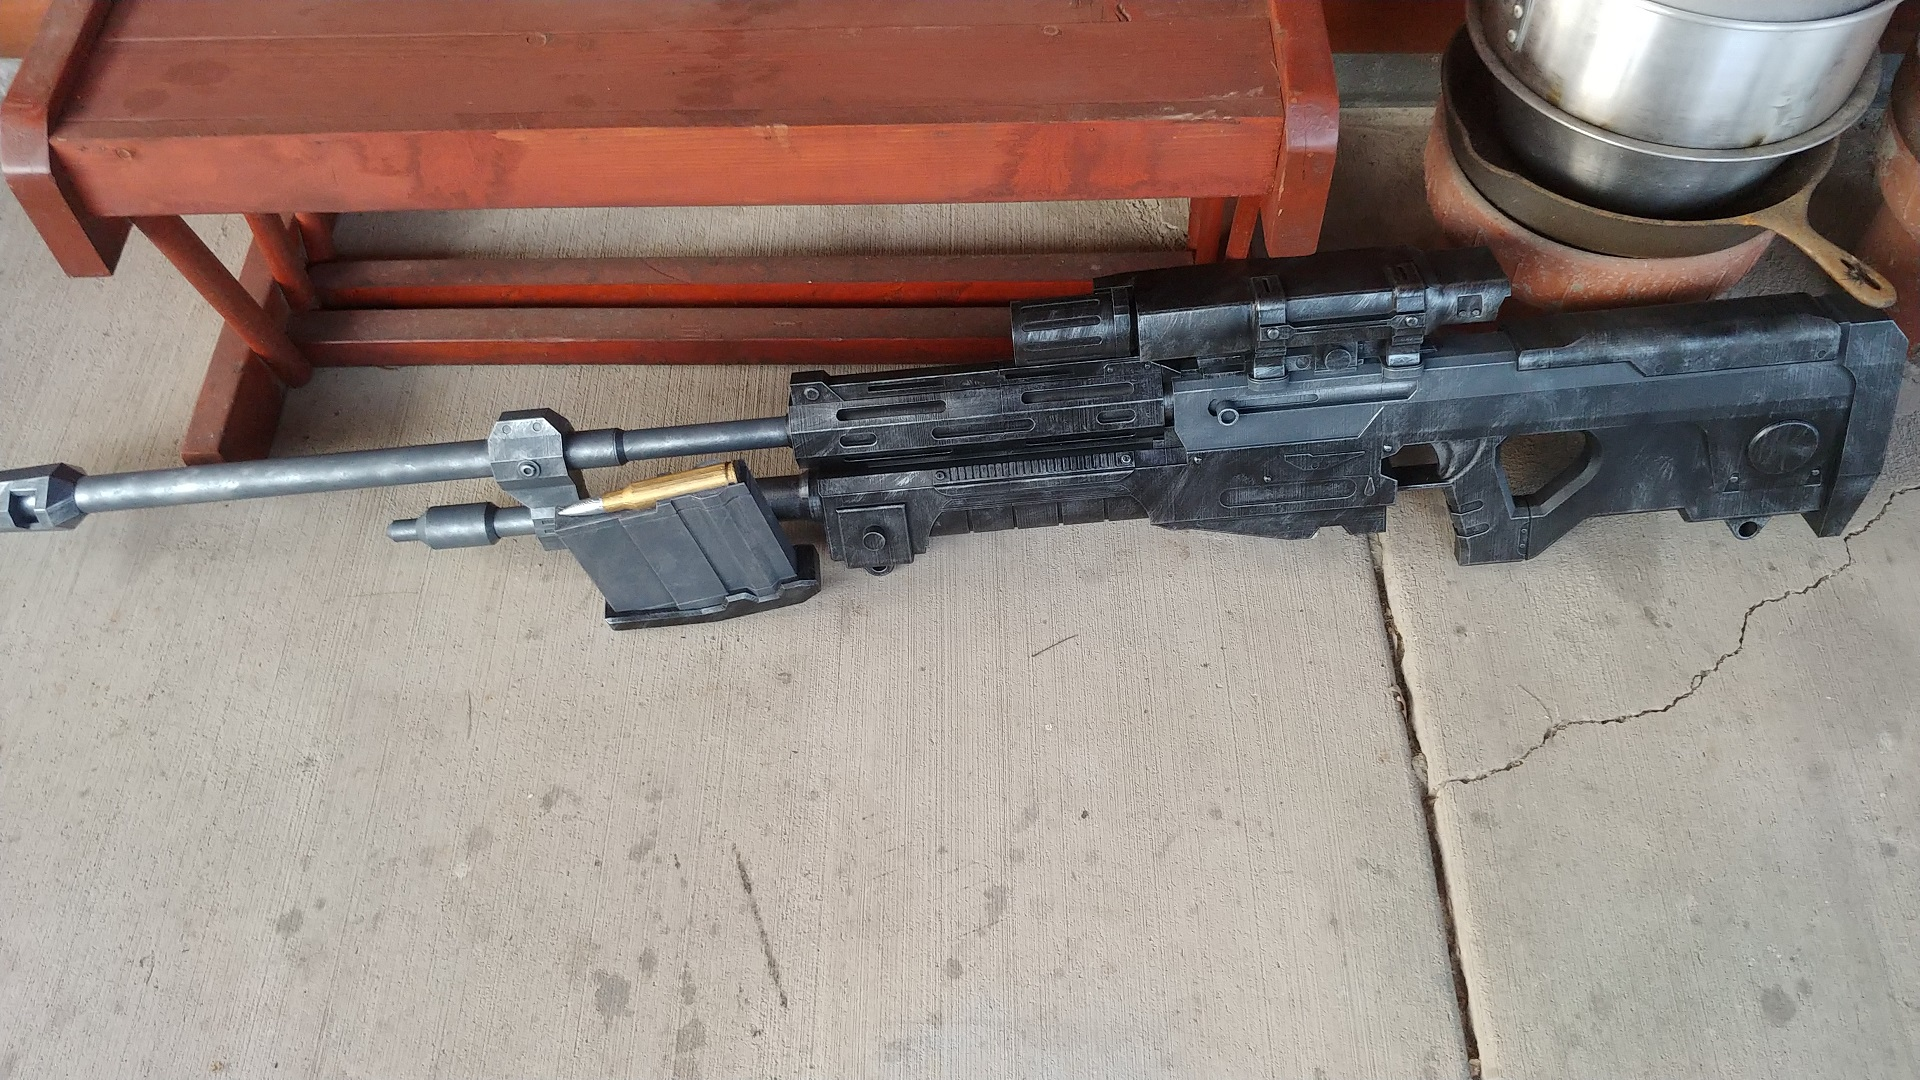 3D Print of Halo's SRS99-AM sniper rifle is ludicrously